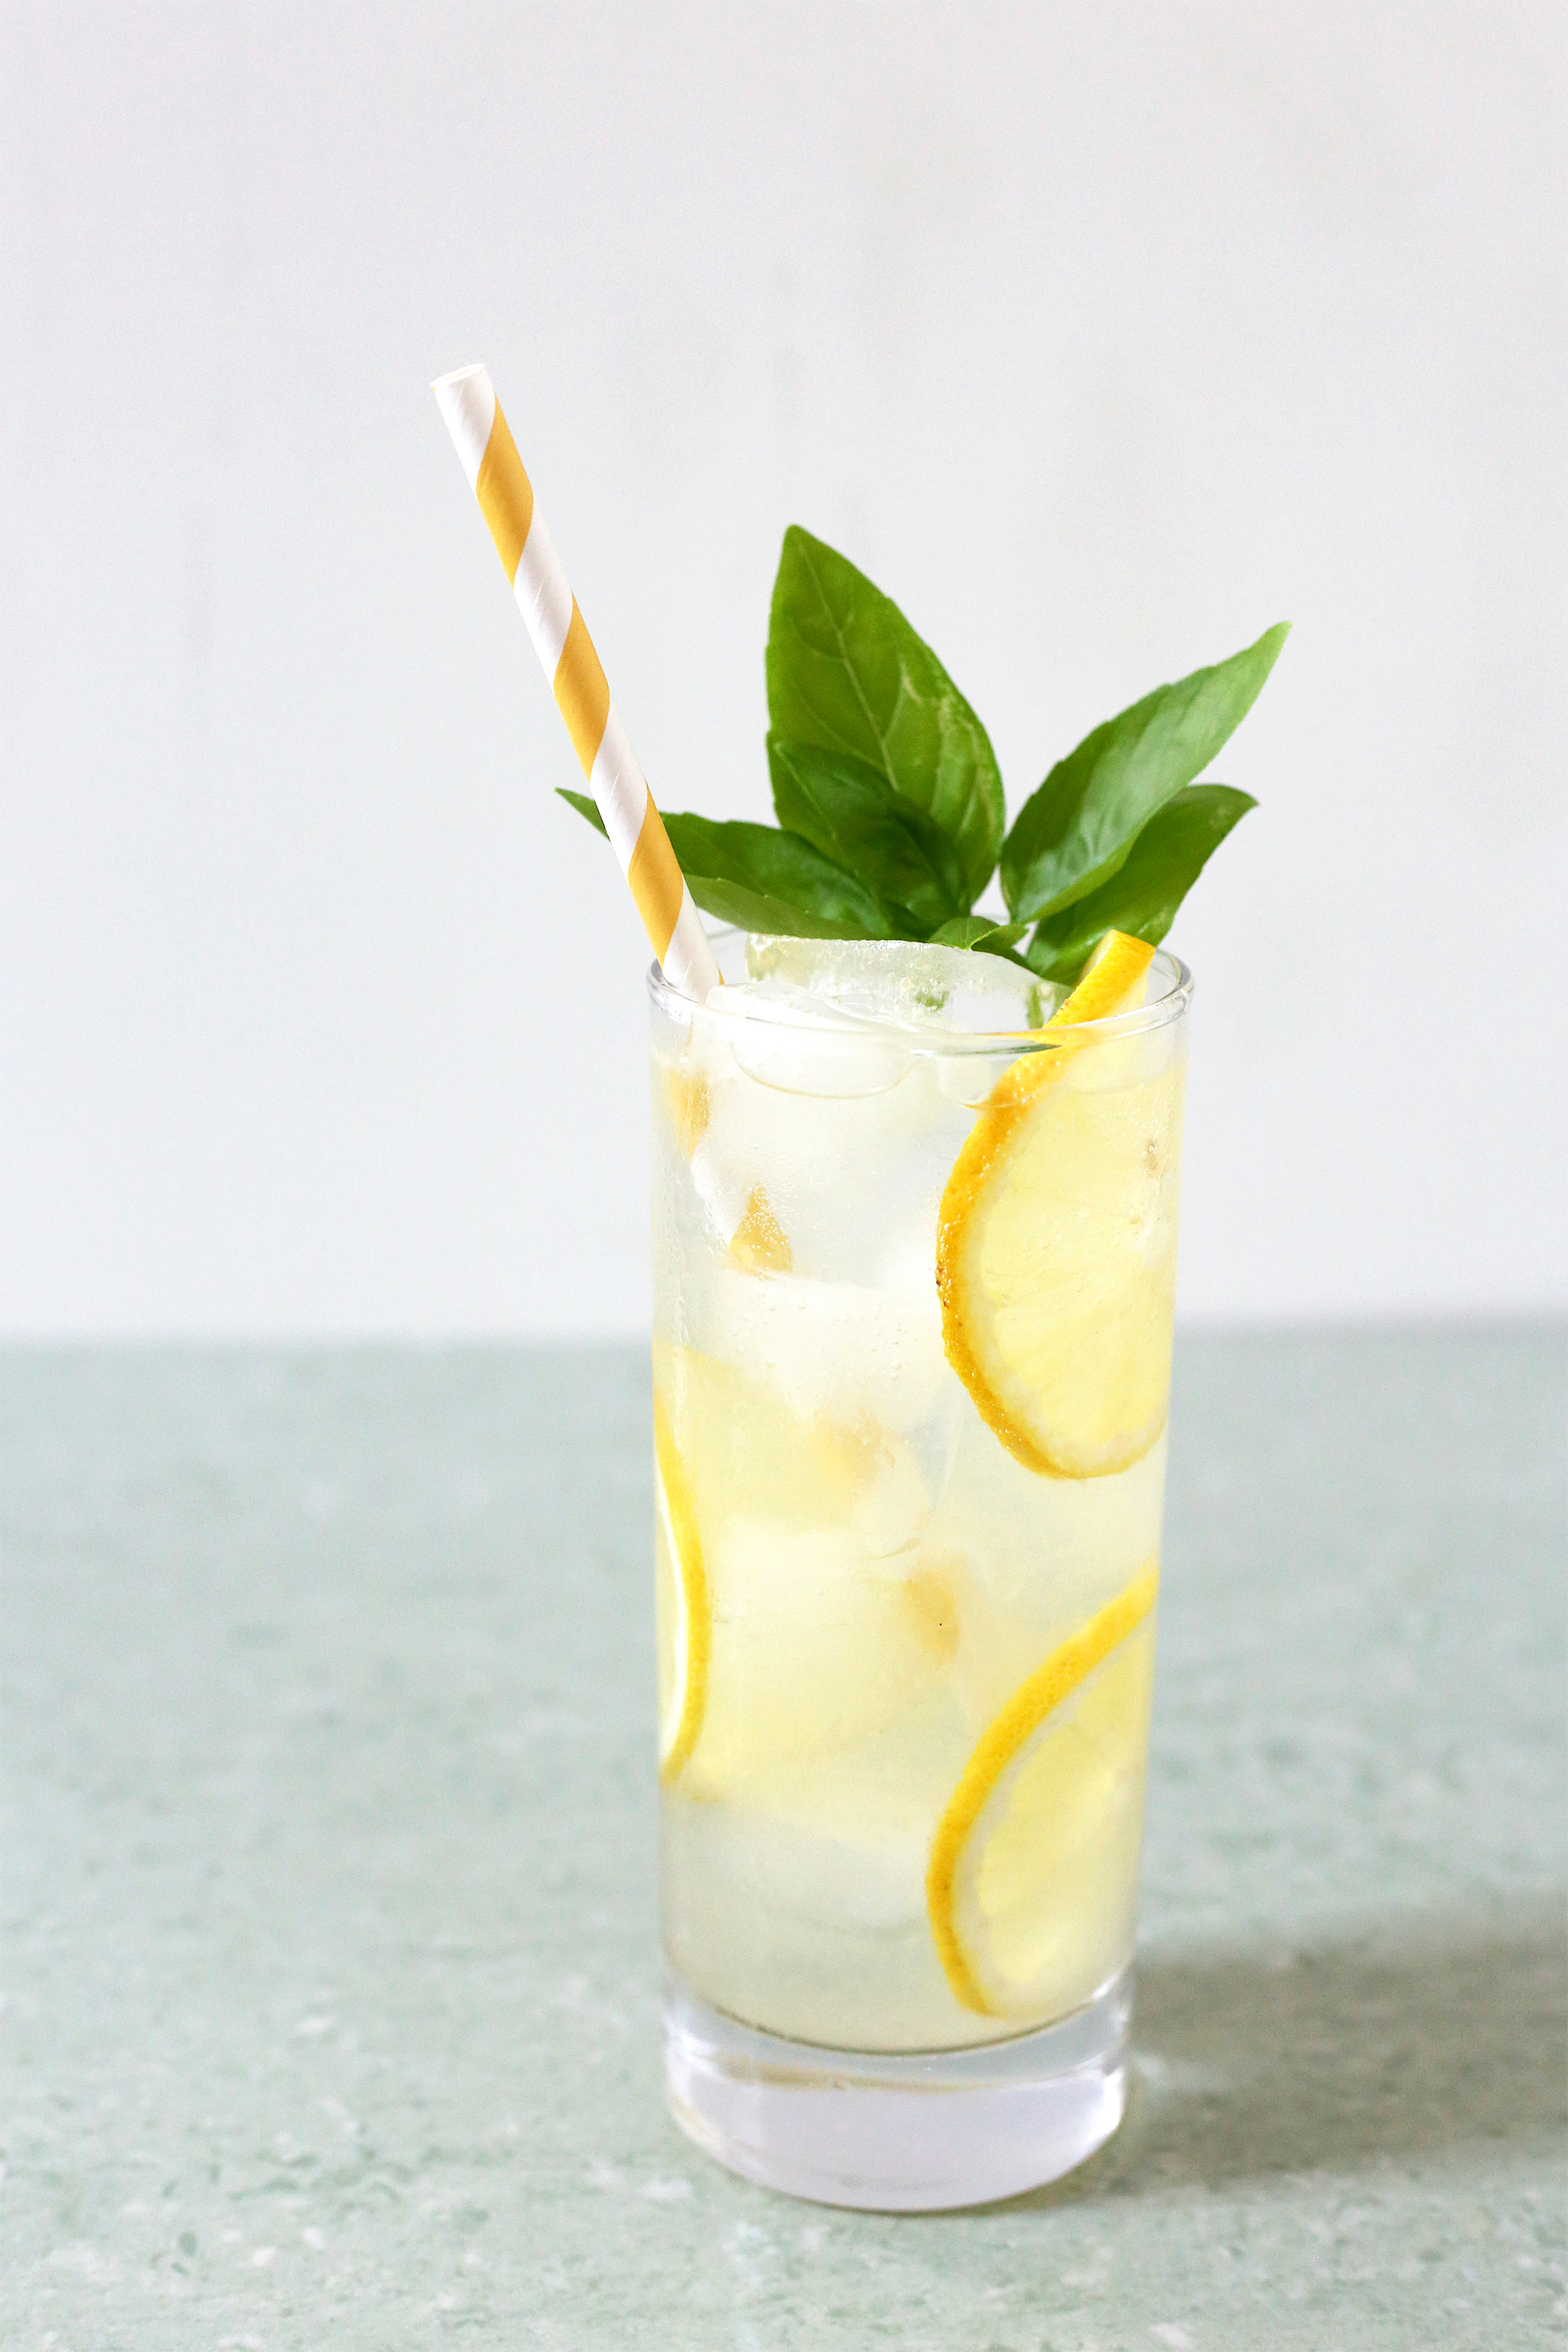 Summer in a glass: Boozy & Bubbly Basil Lemonade. Get the recipe: unusuallylovely.com